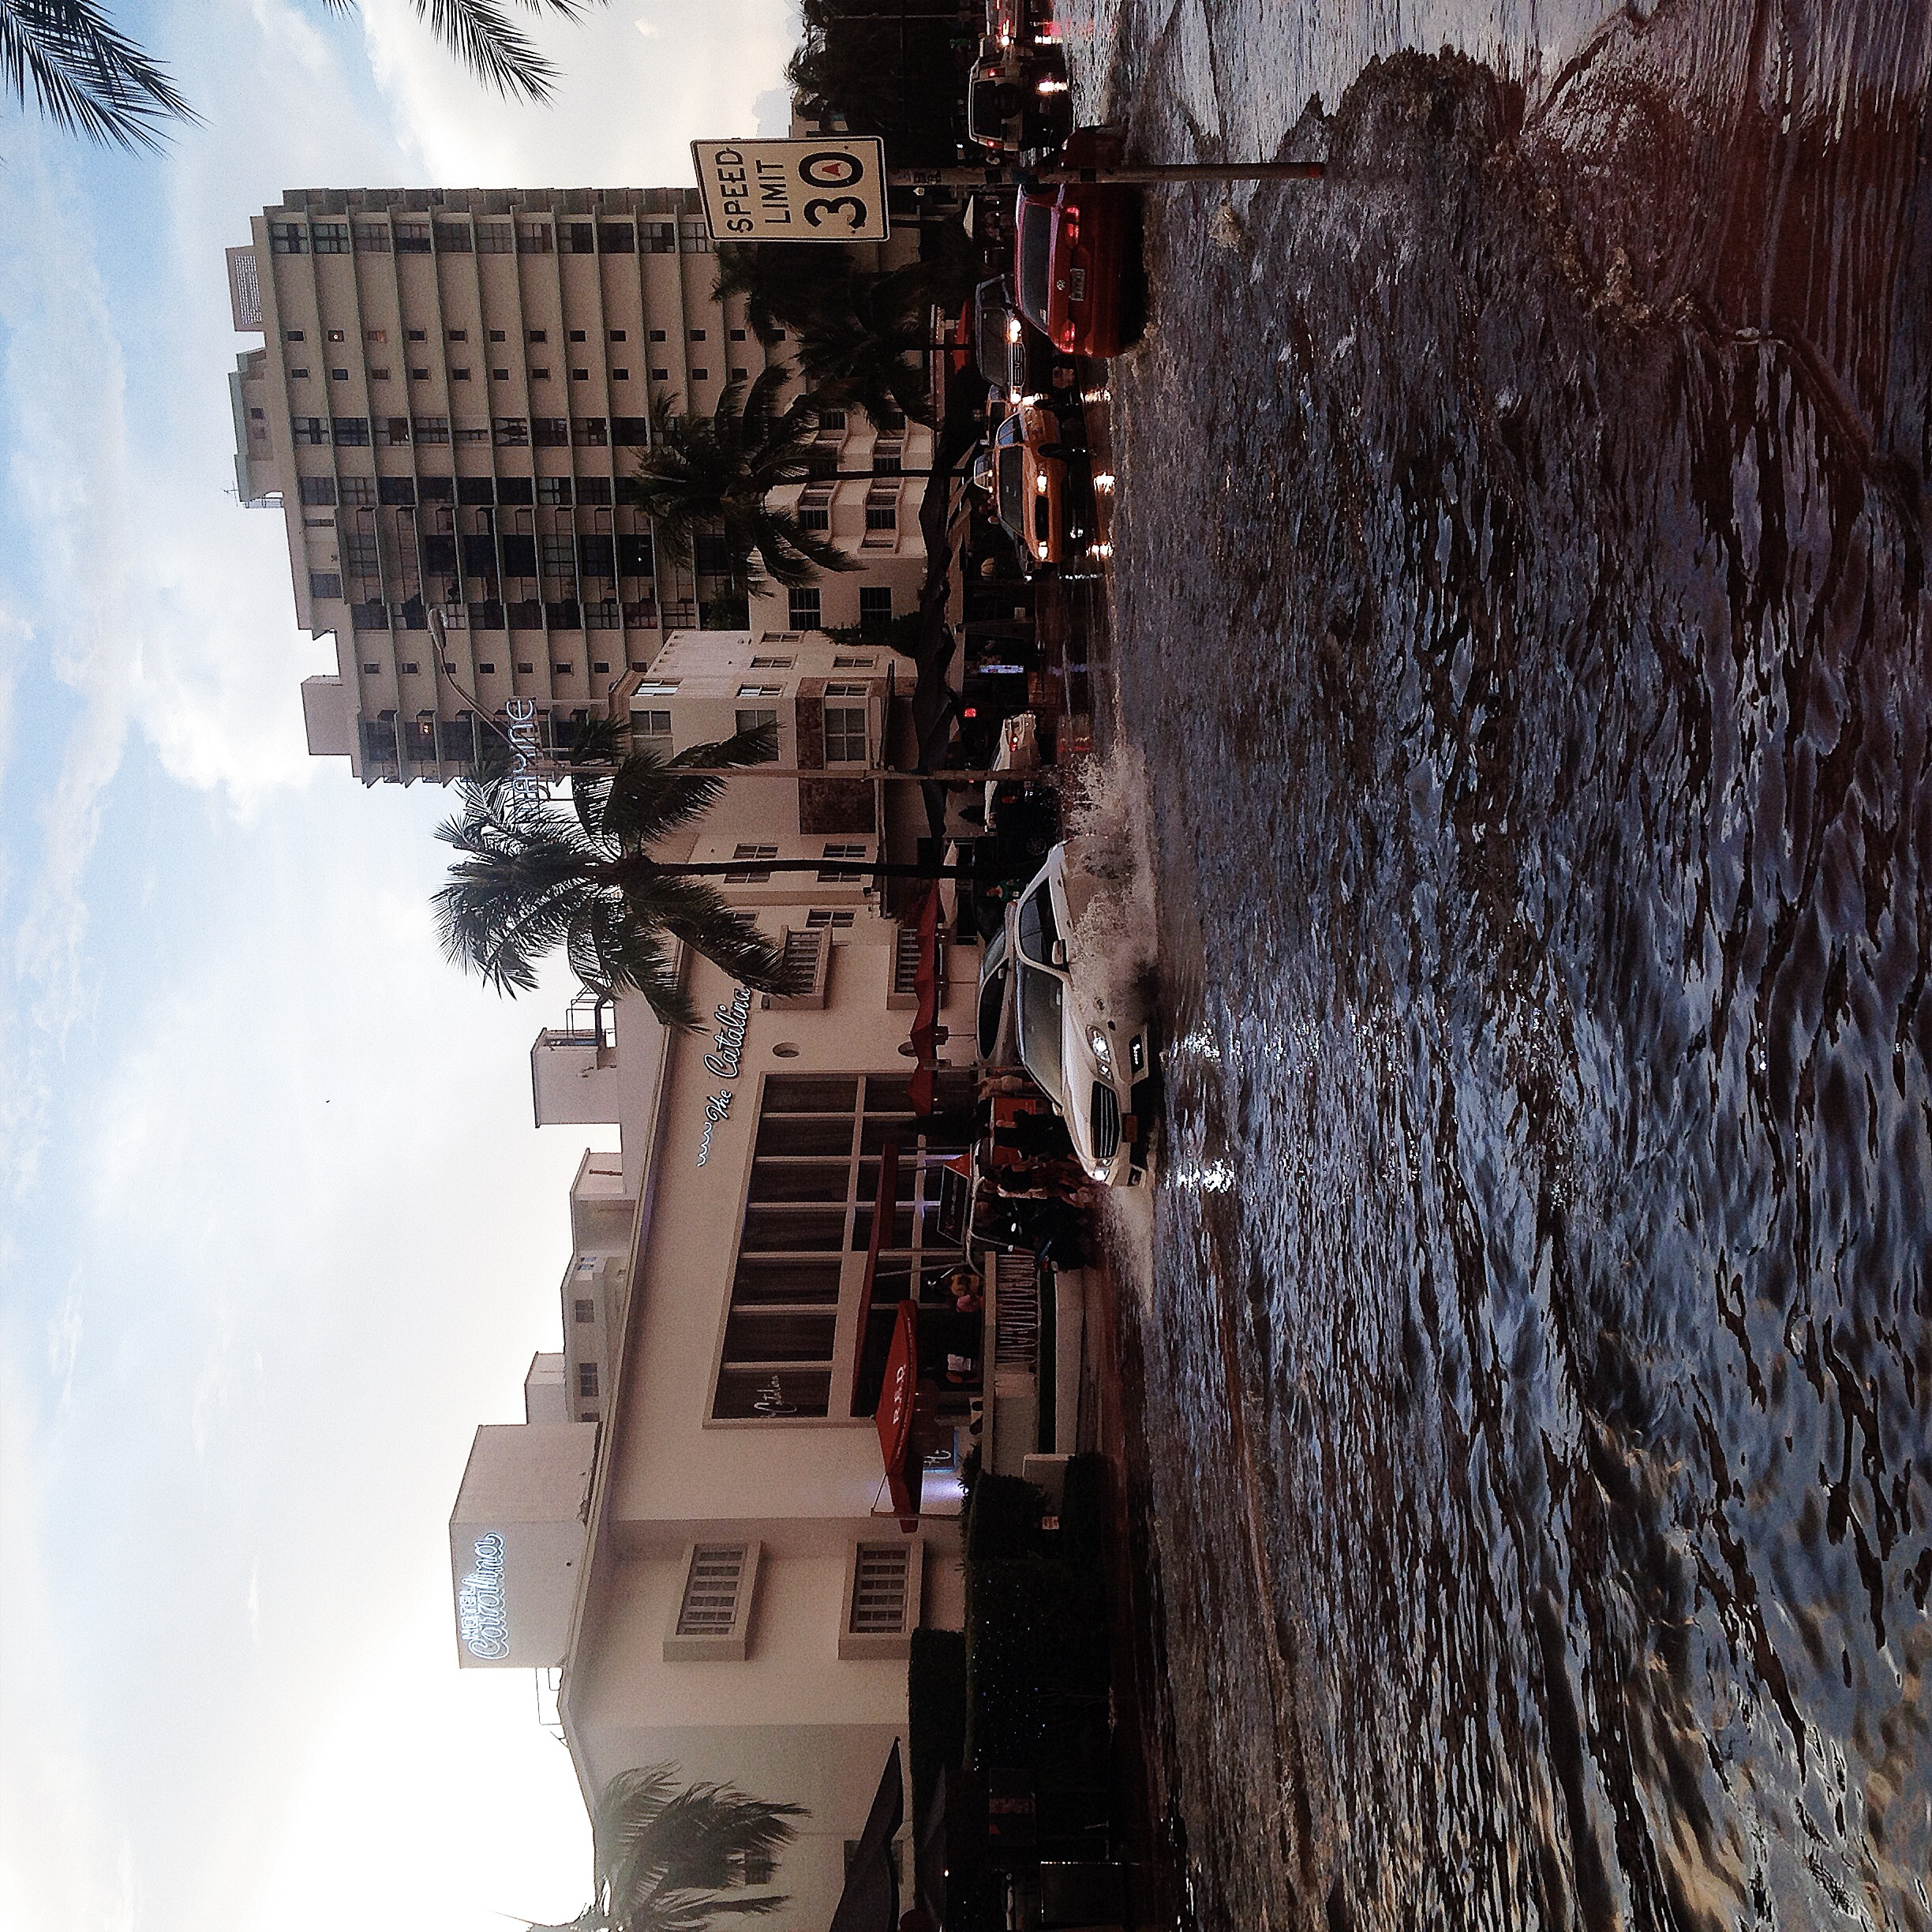 Did I mention that we had torrential rain in Miami and it flooded? lol!!